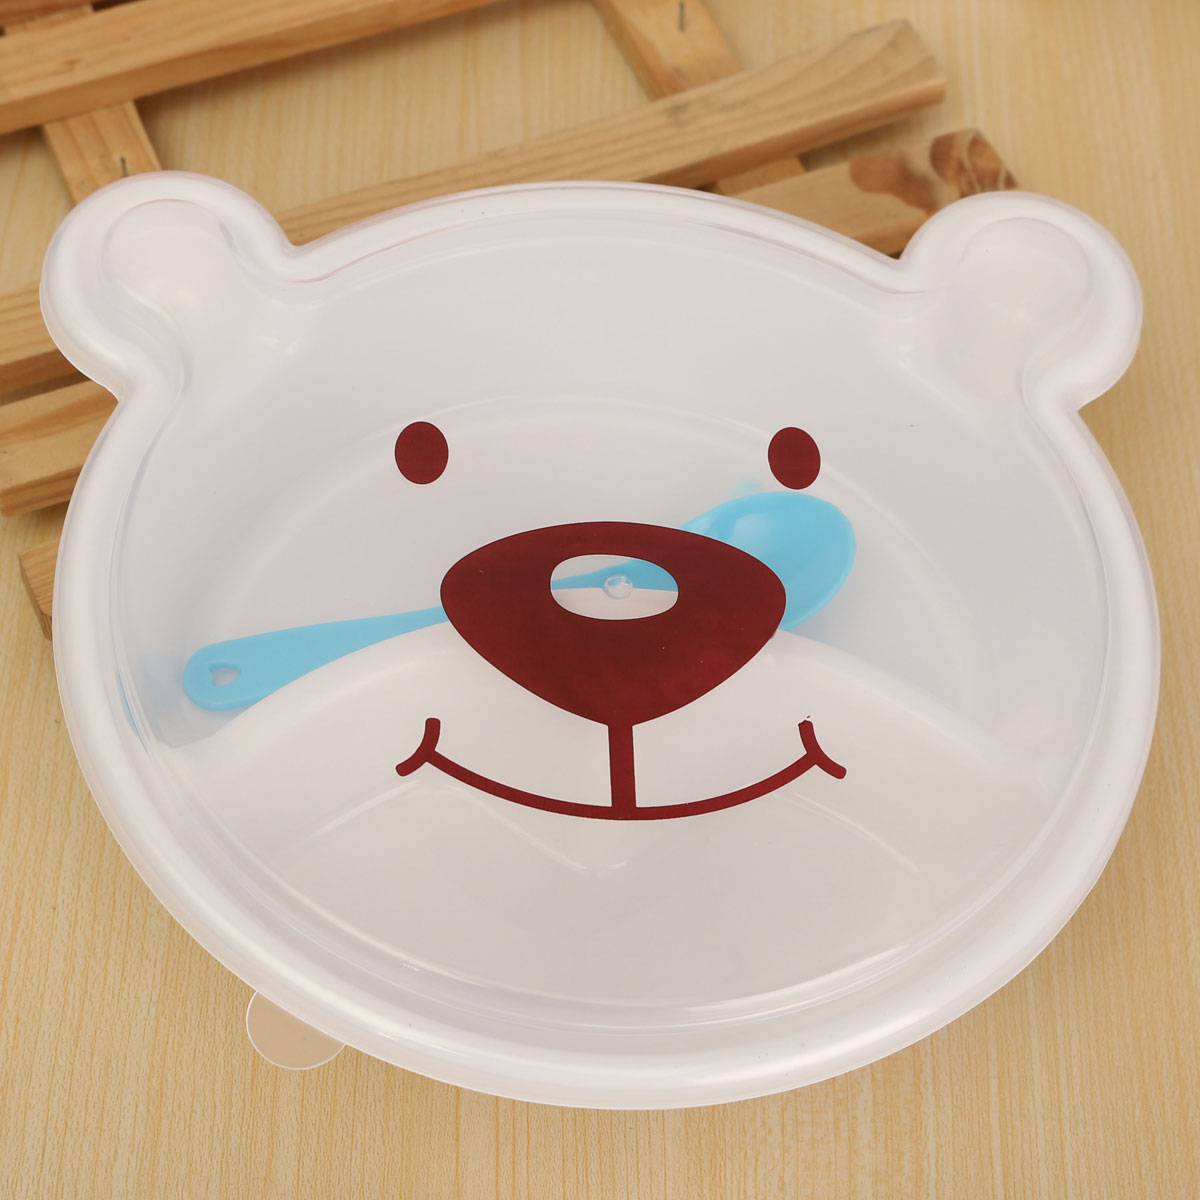 Portable Bento Lunch Box Plastic Cute Cartoon Bear Food Fruit Storage with Spoon